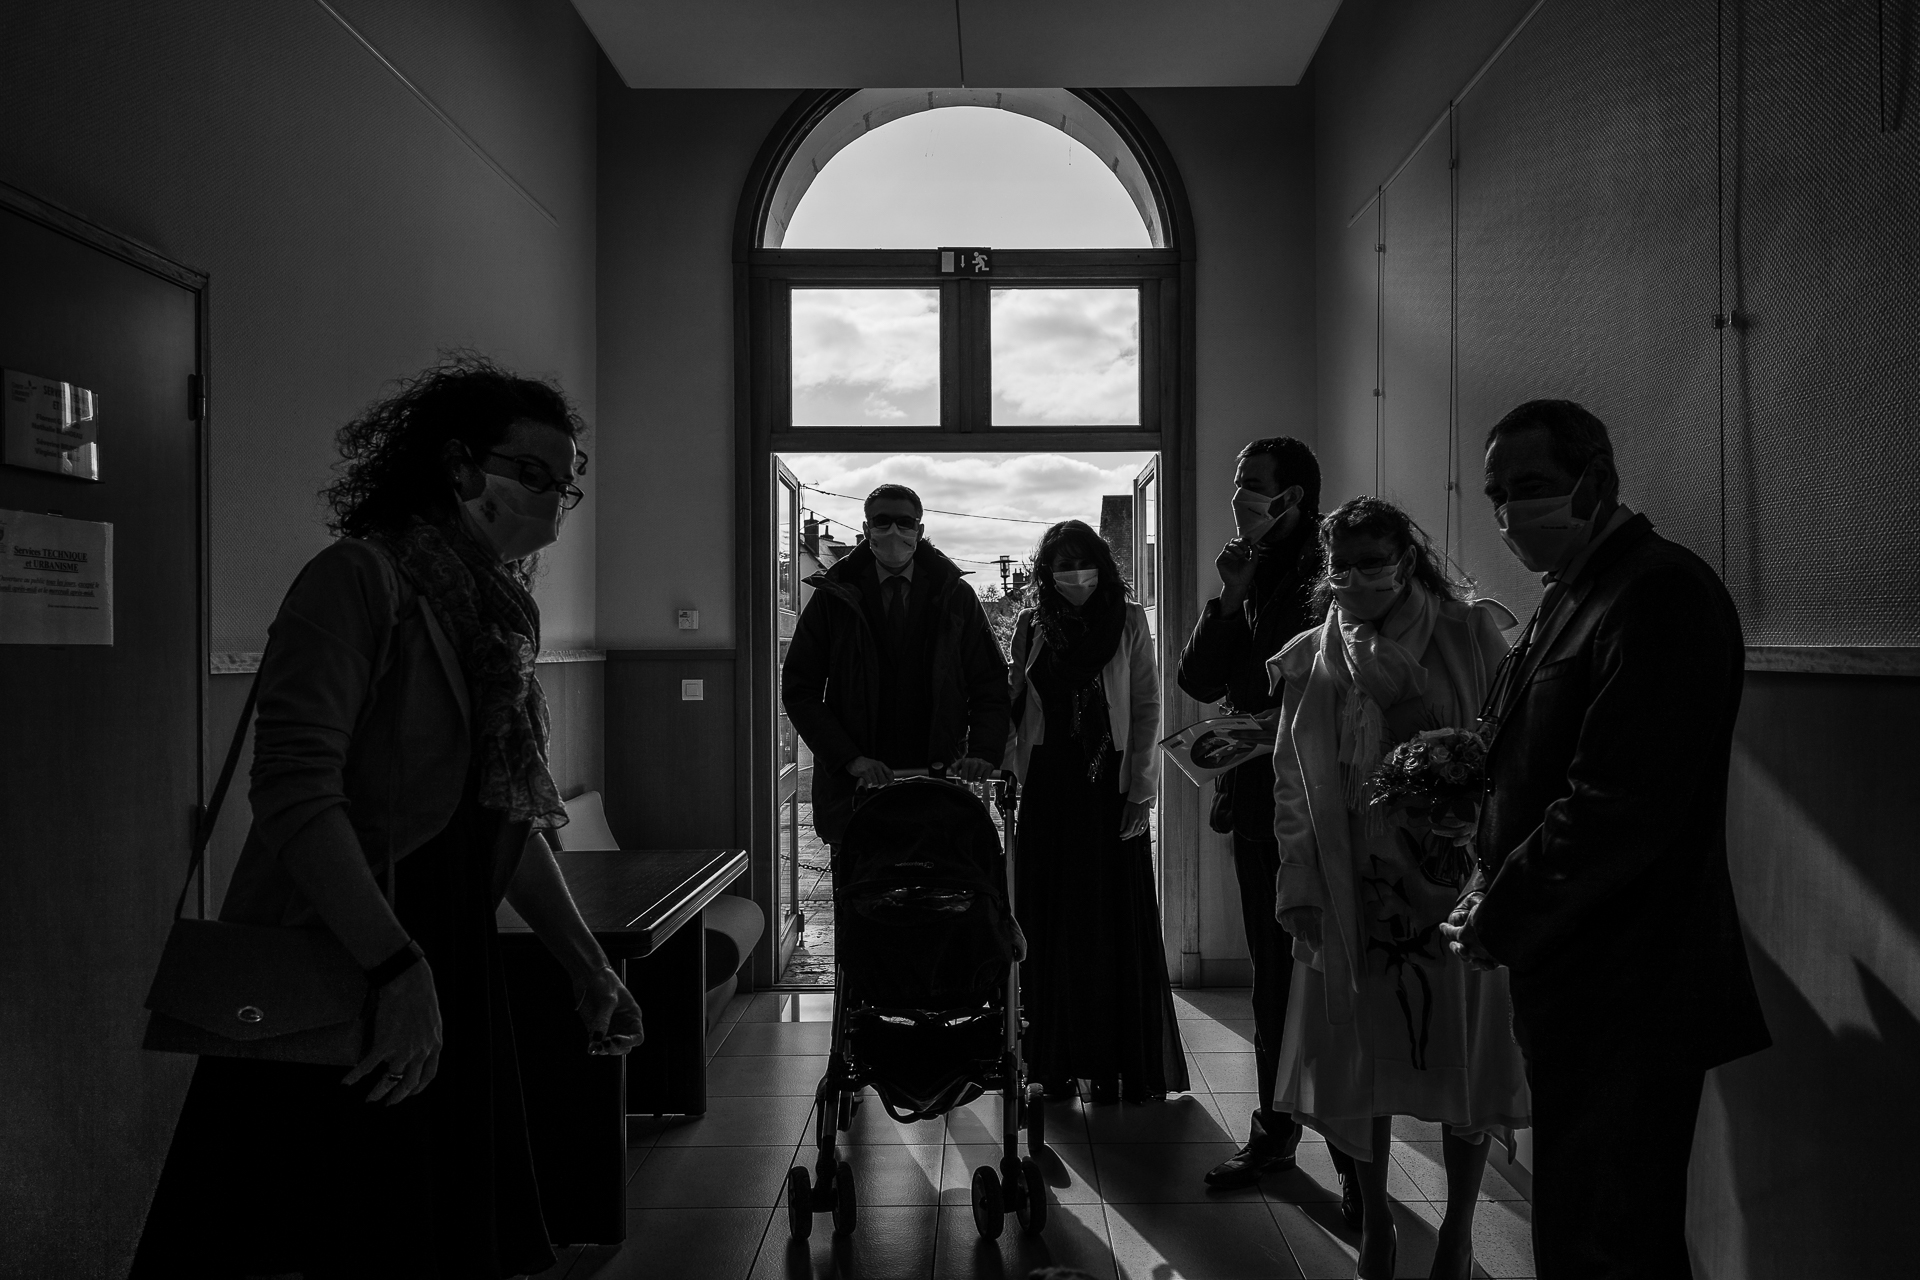 BW Wedding Photography from Saint Laurent Nouan Town Hall | Guests with masks waited in silence before the couple arrived